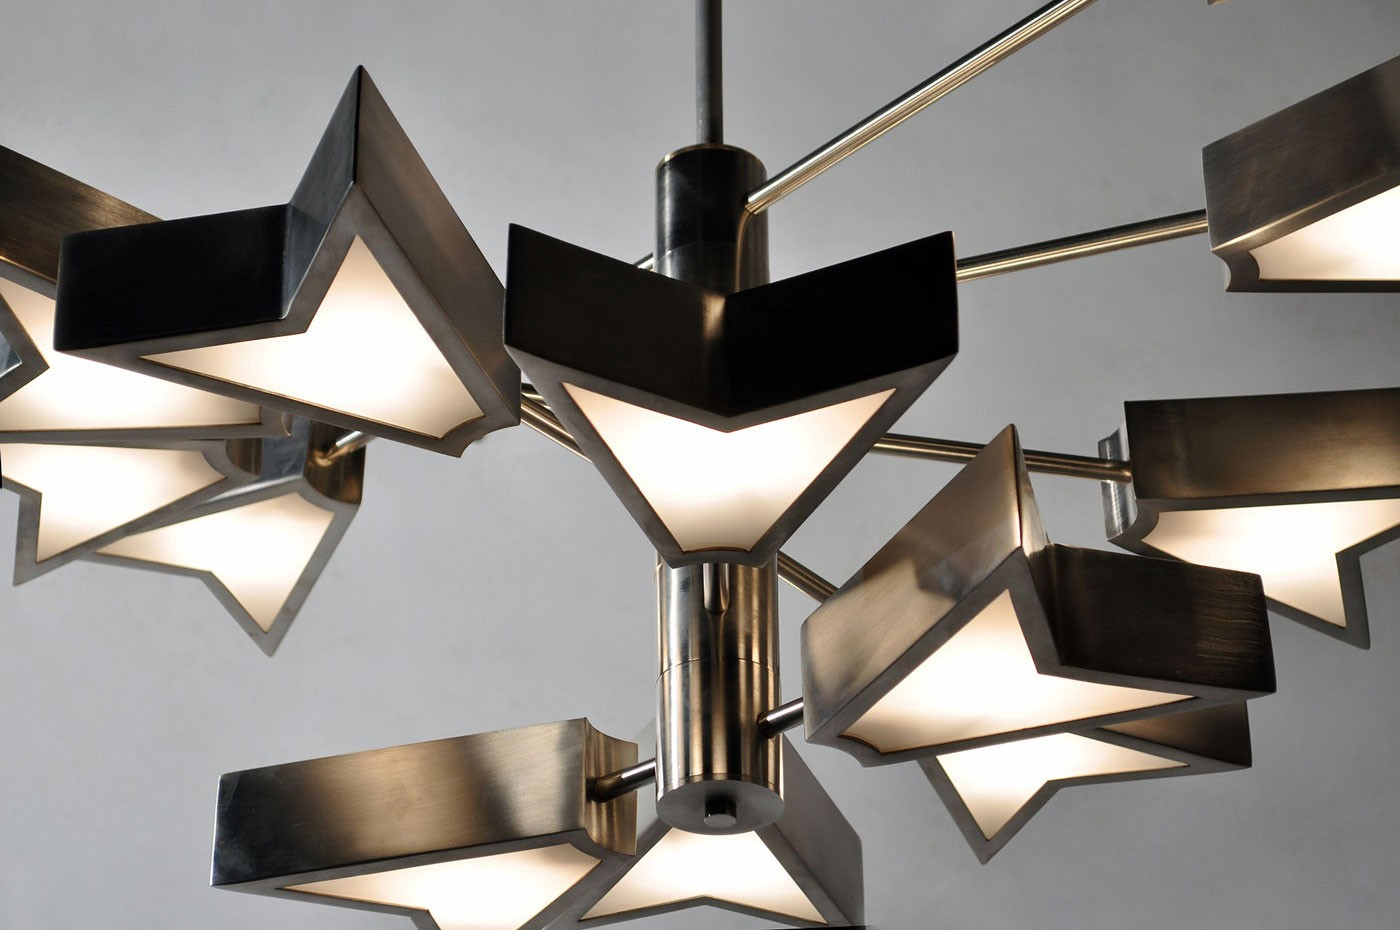 Osiris chandelier by Matthew Fairbank Design, an exhibitor at WestEdge Design Fair